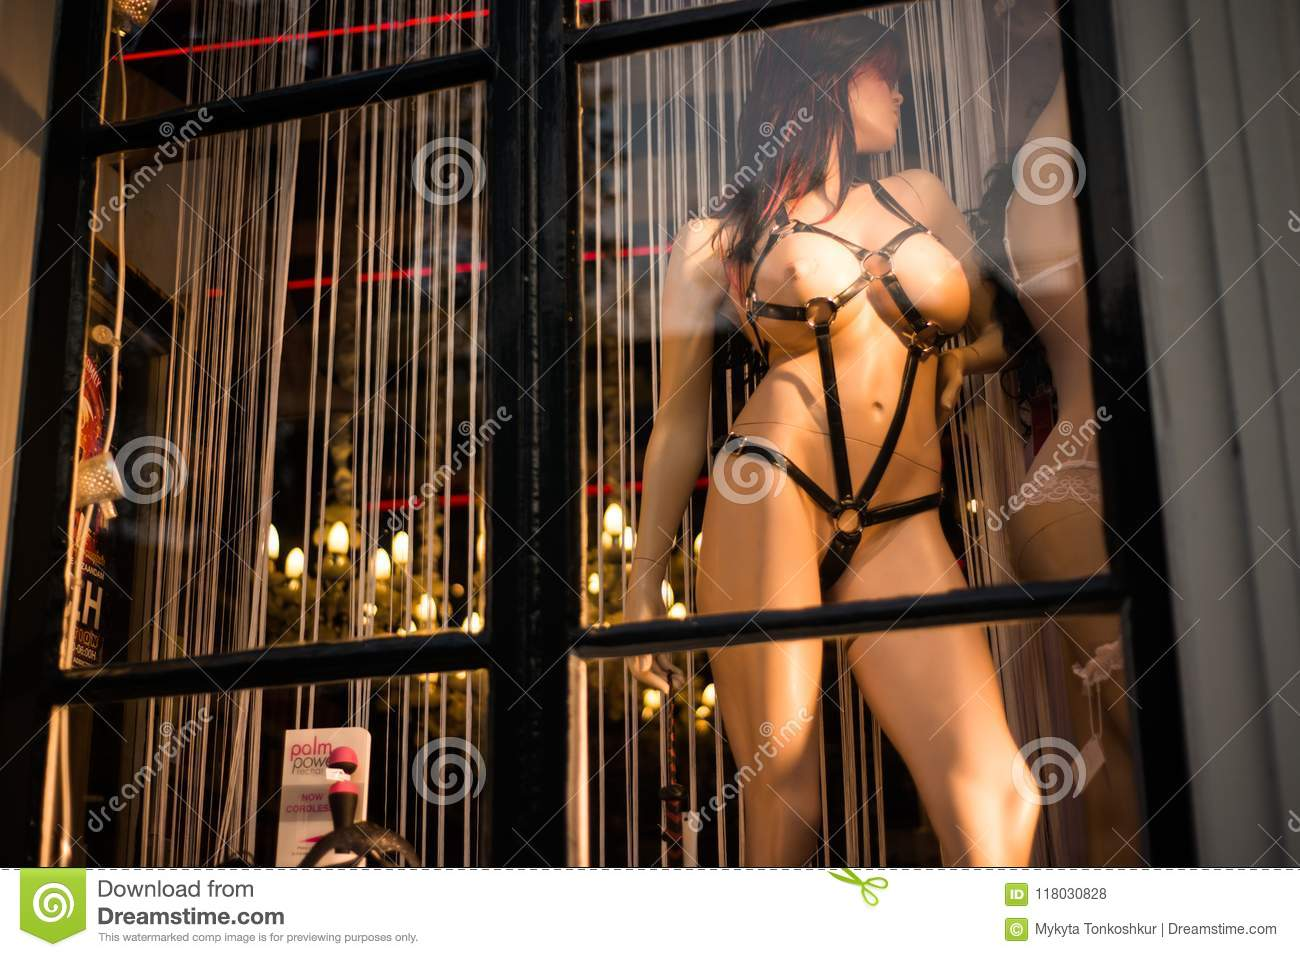 Free Sex Famous famous sex shops in the amsterdam stock photo - image of